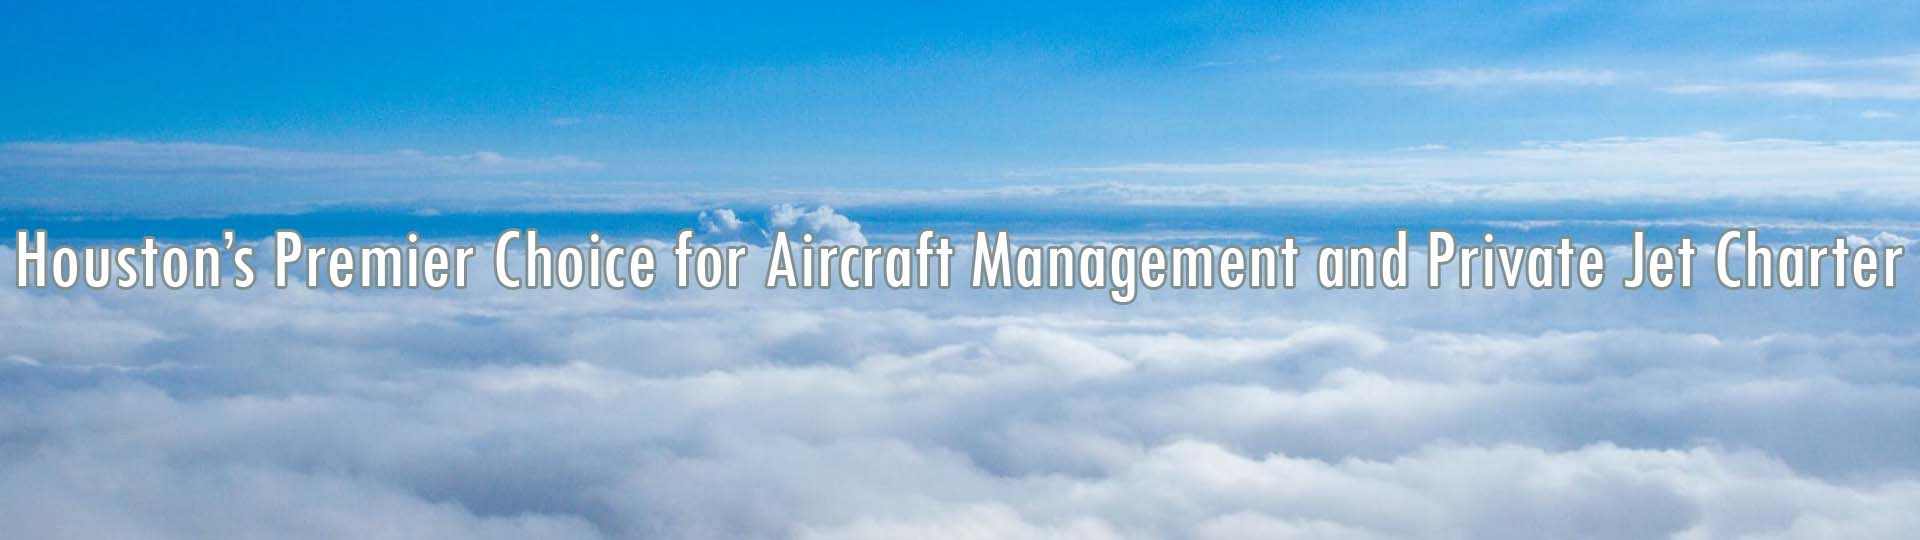 CapJet - Houston Aircraft Management and Private Jet Charter